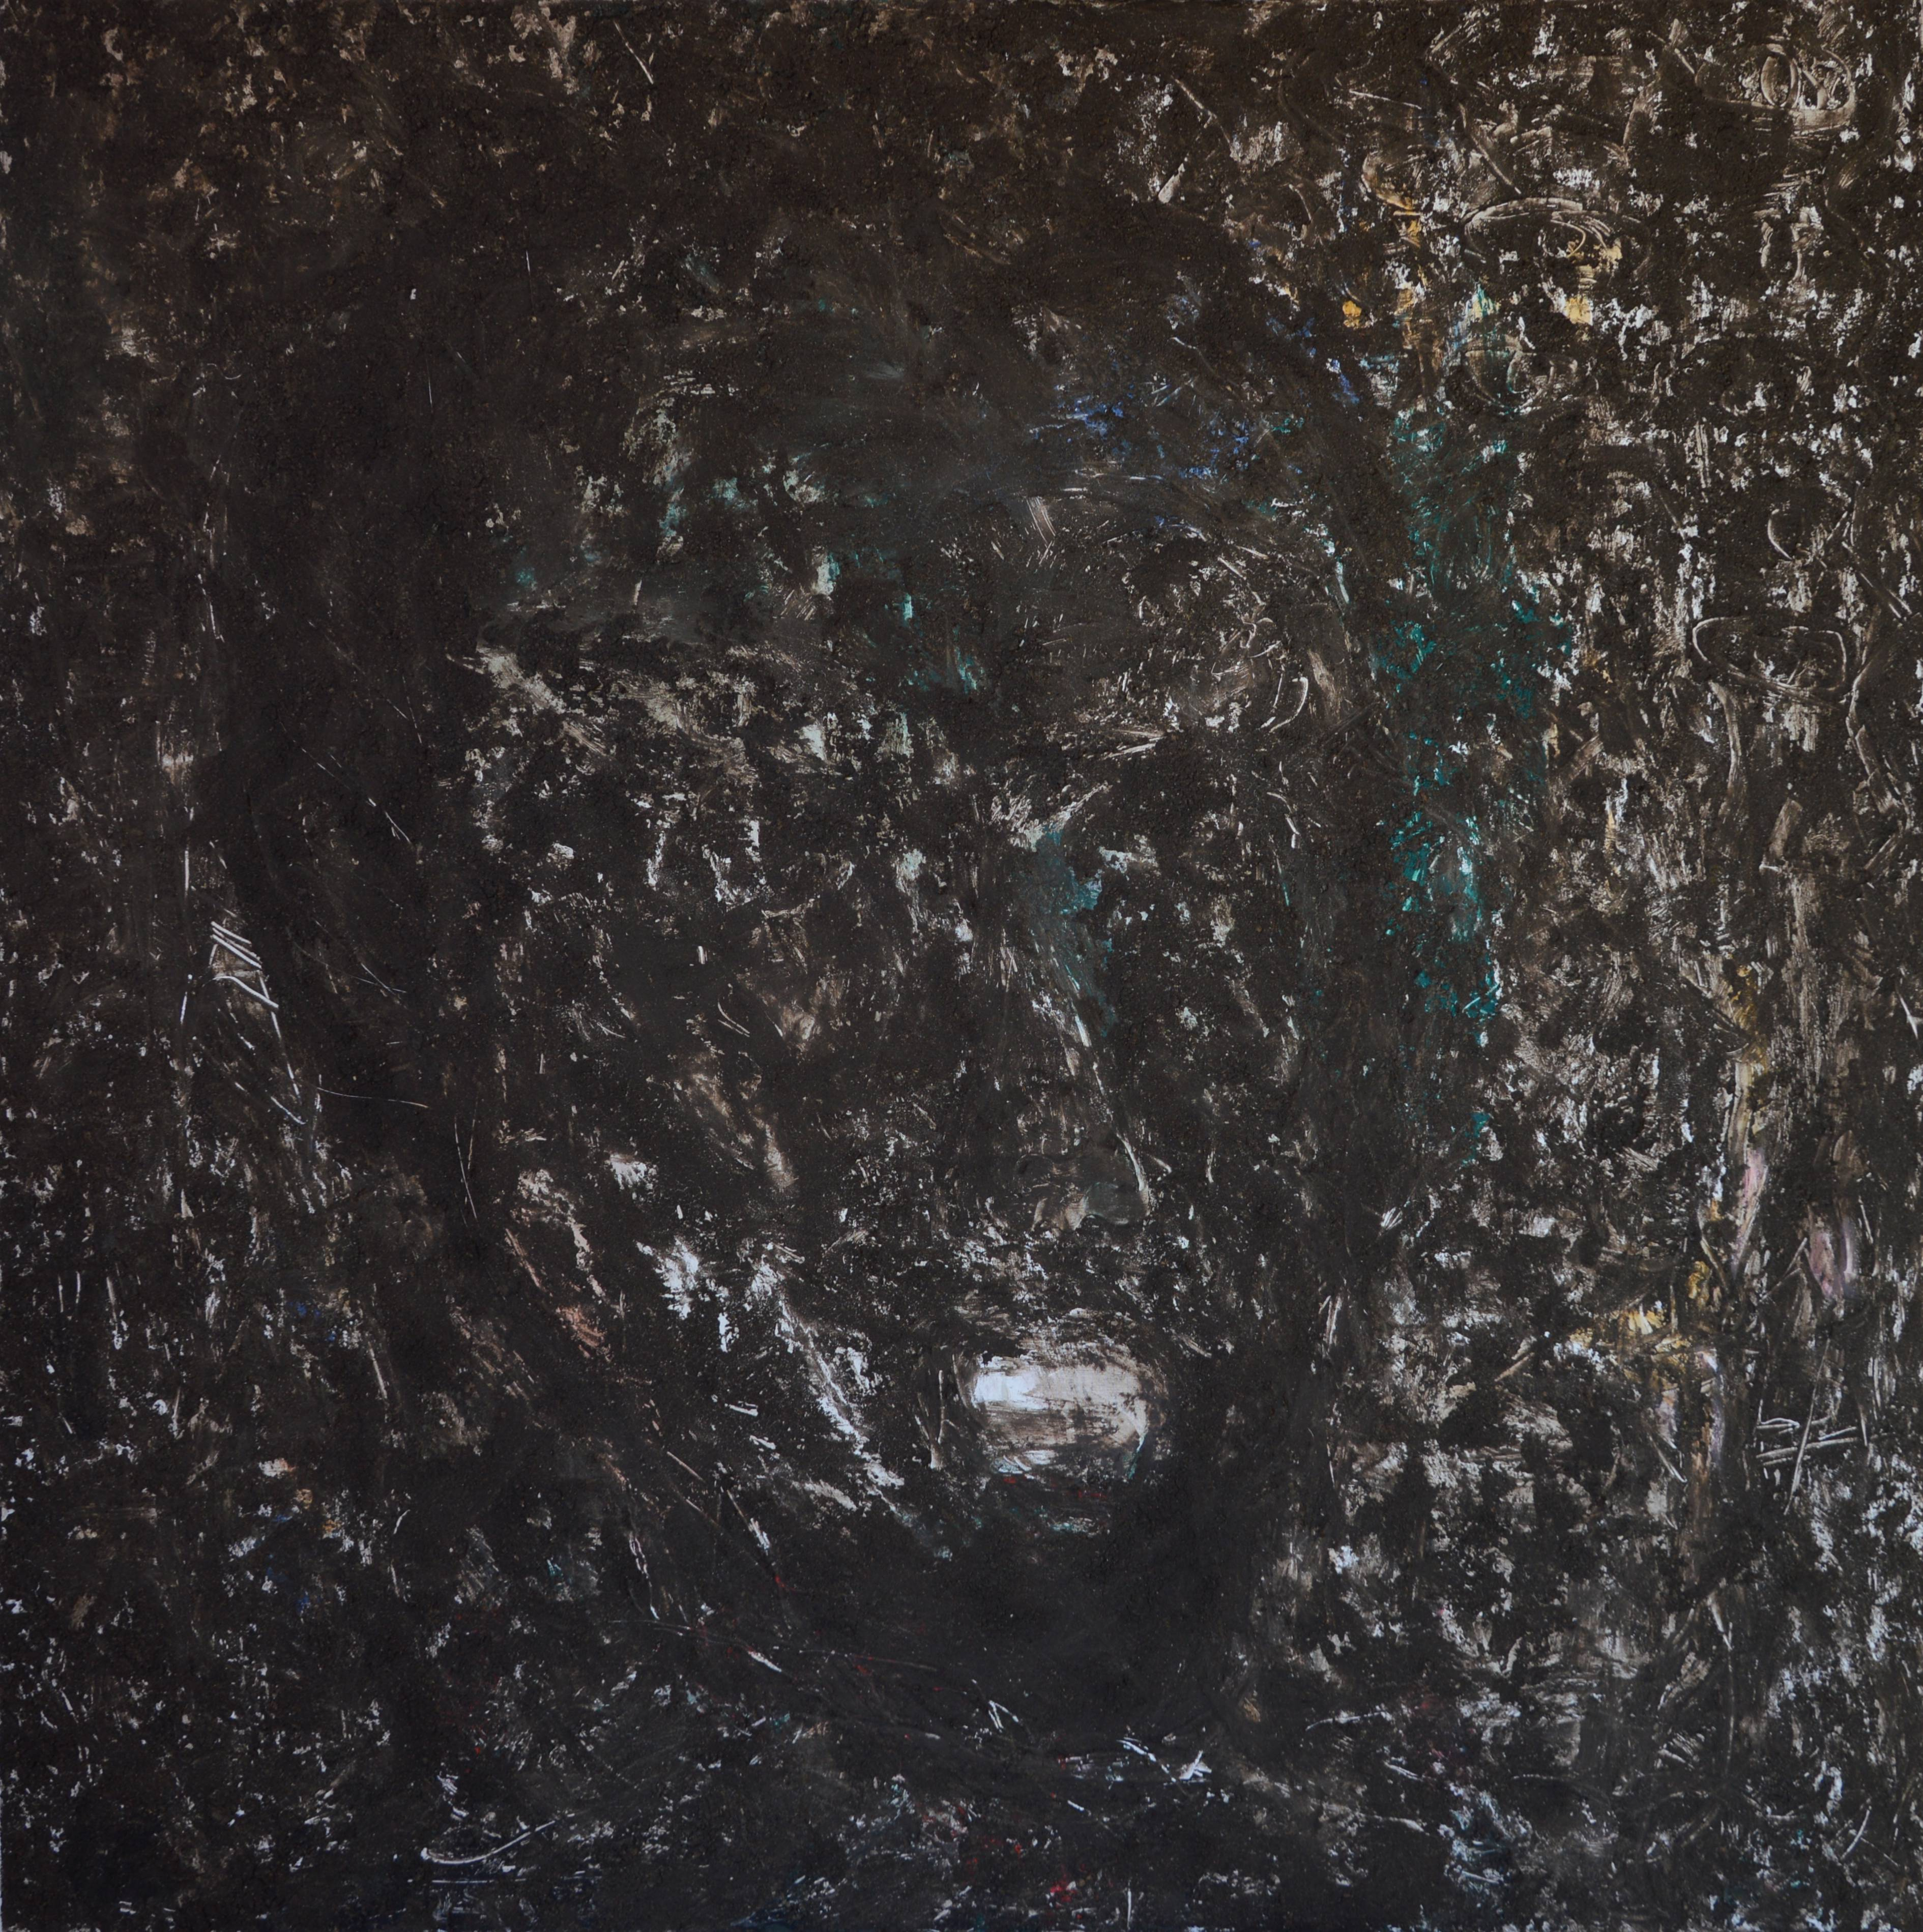 Selfie from the past, 150x150cm, bio soil, acrylic on canvas, 2016